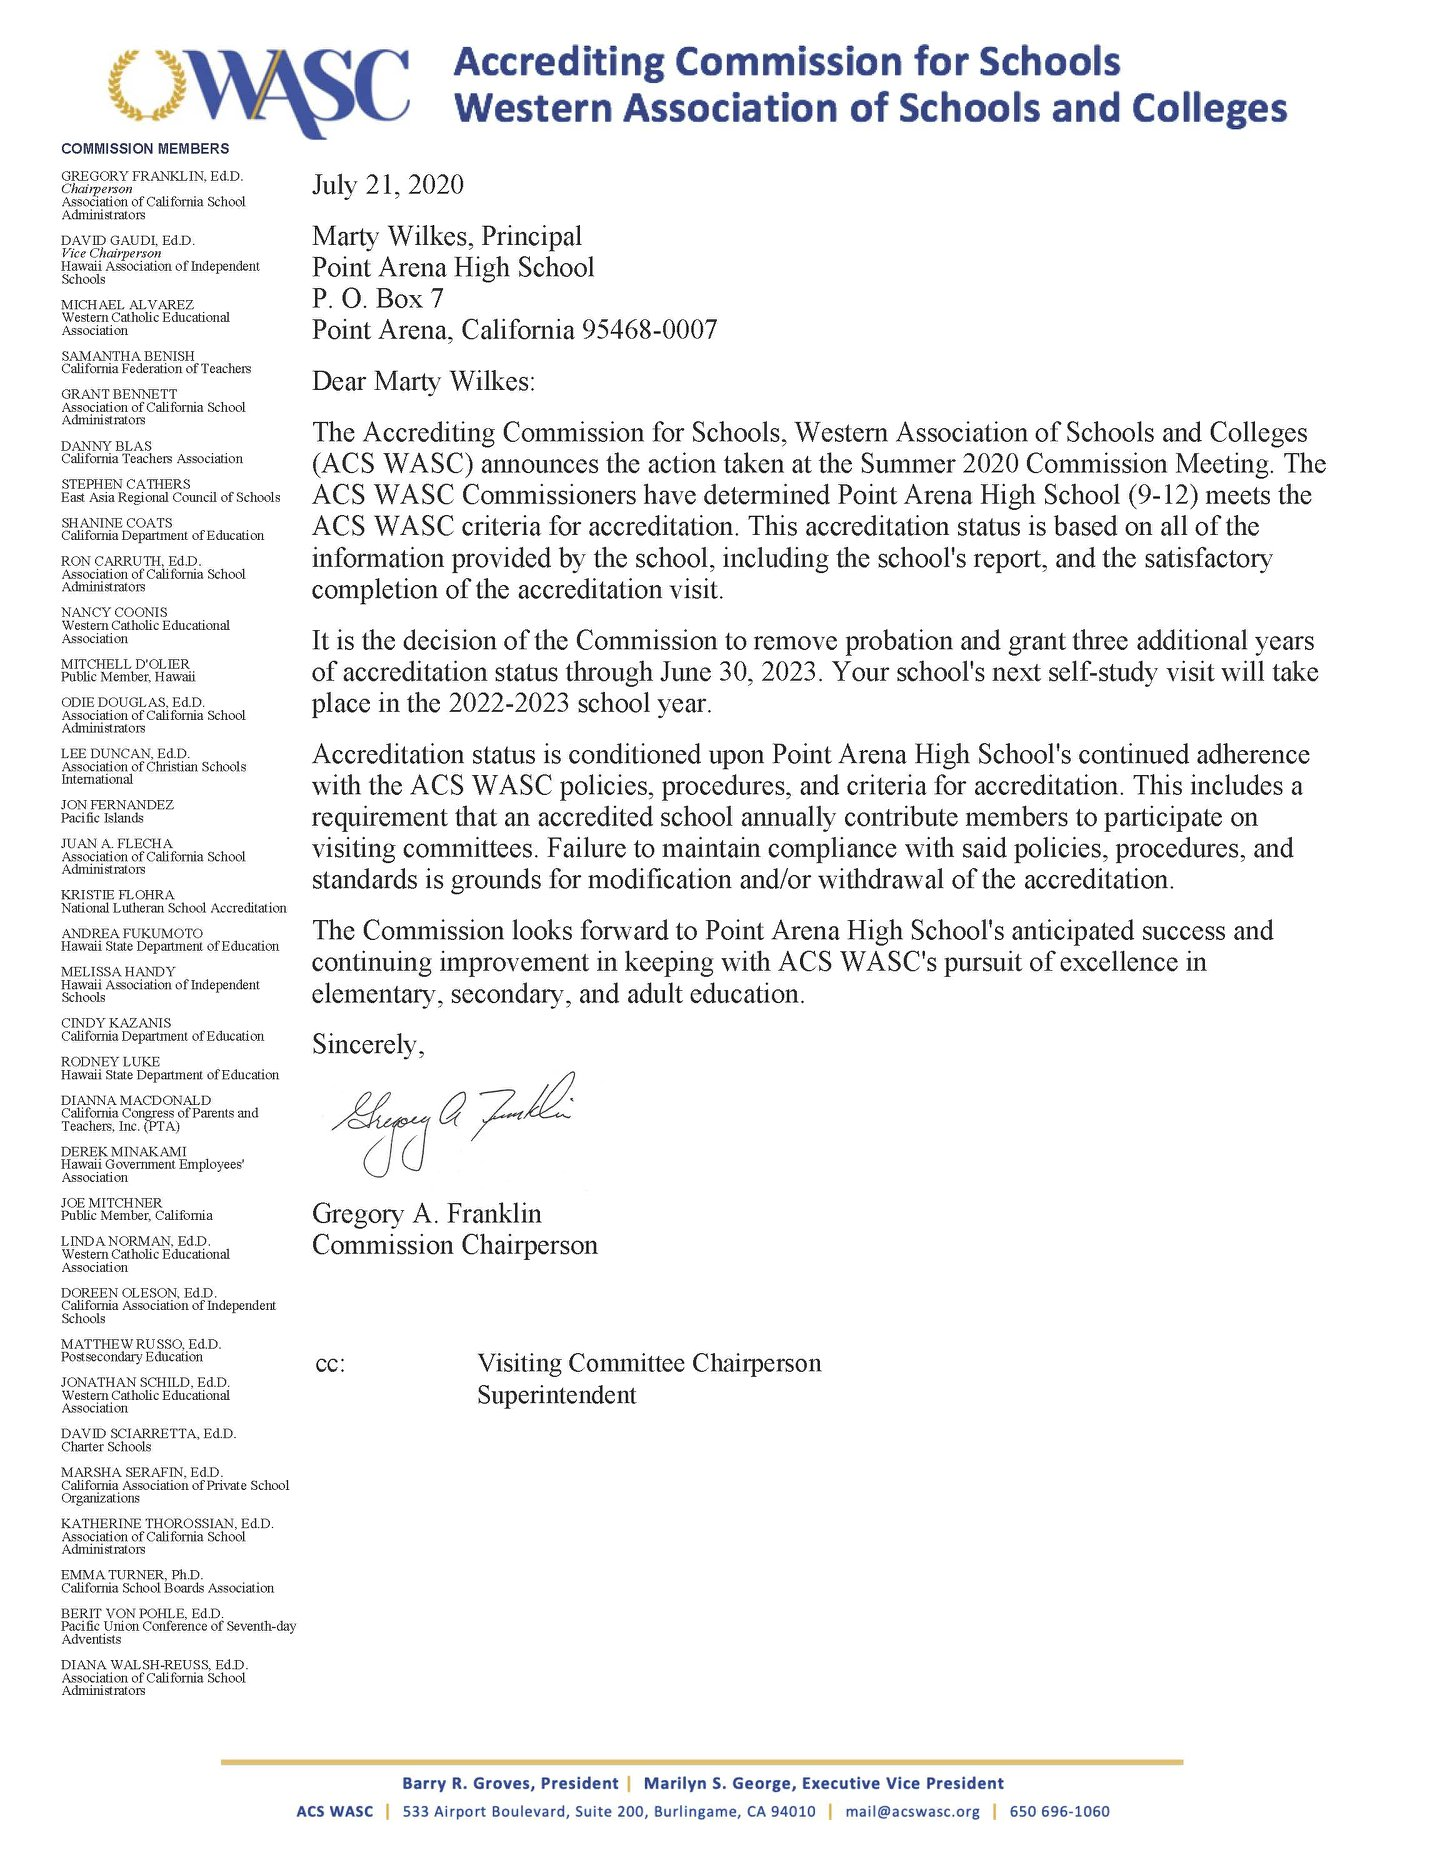 WASC Letter